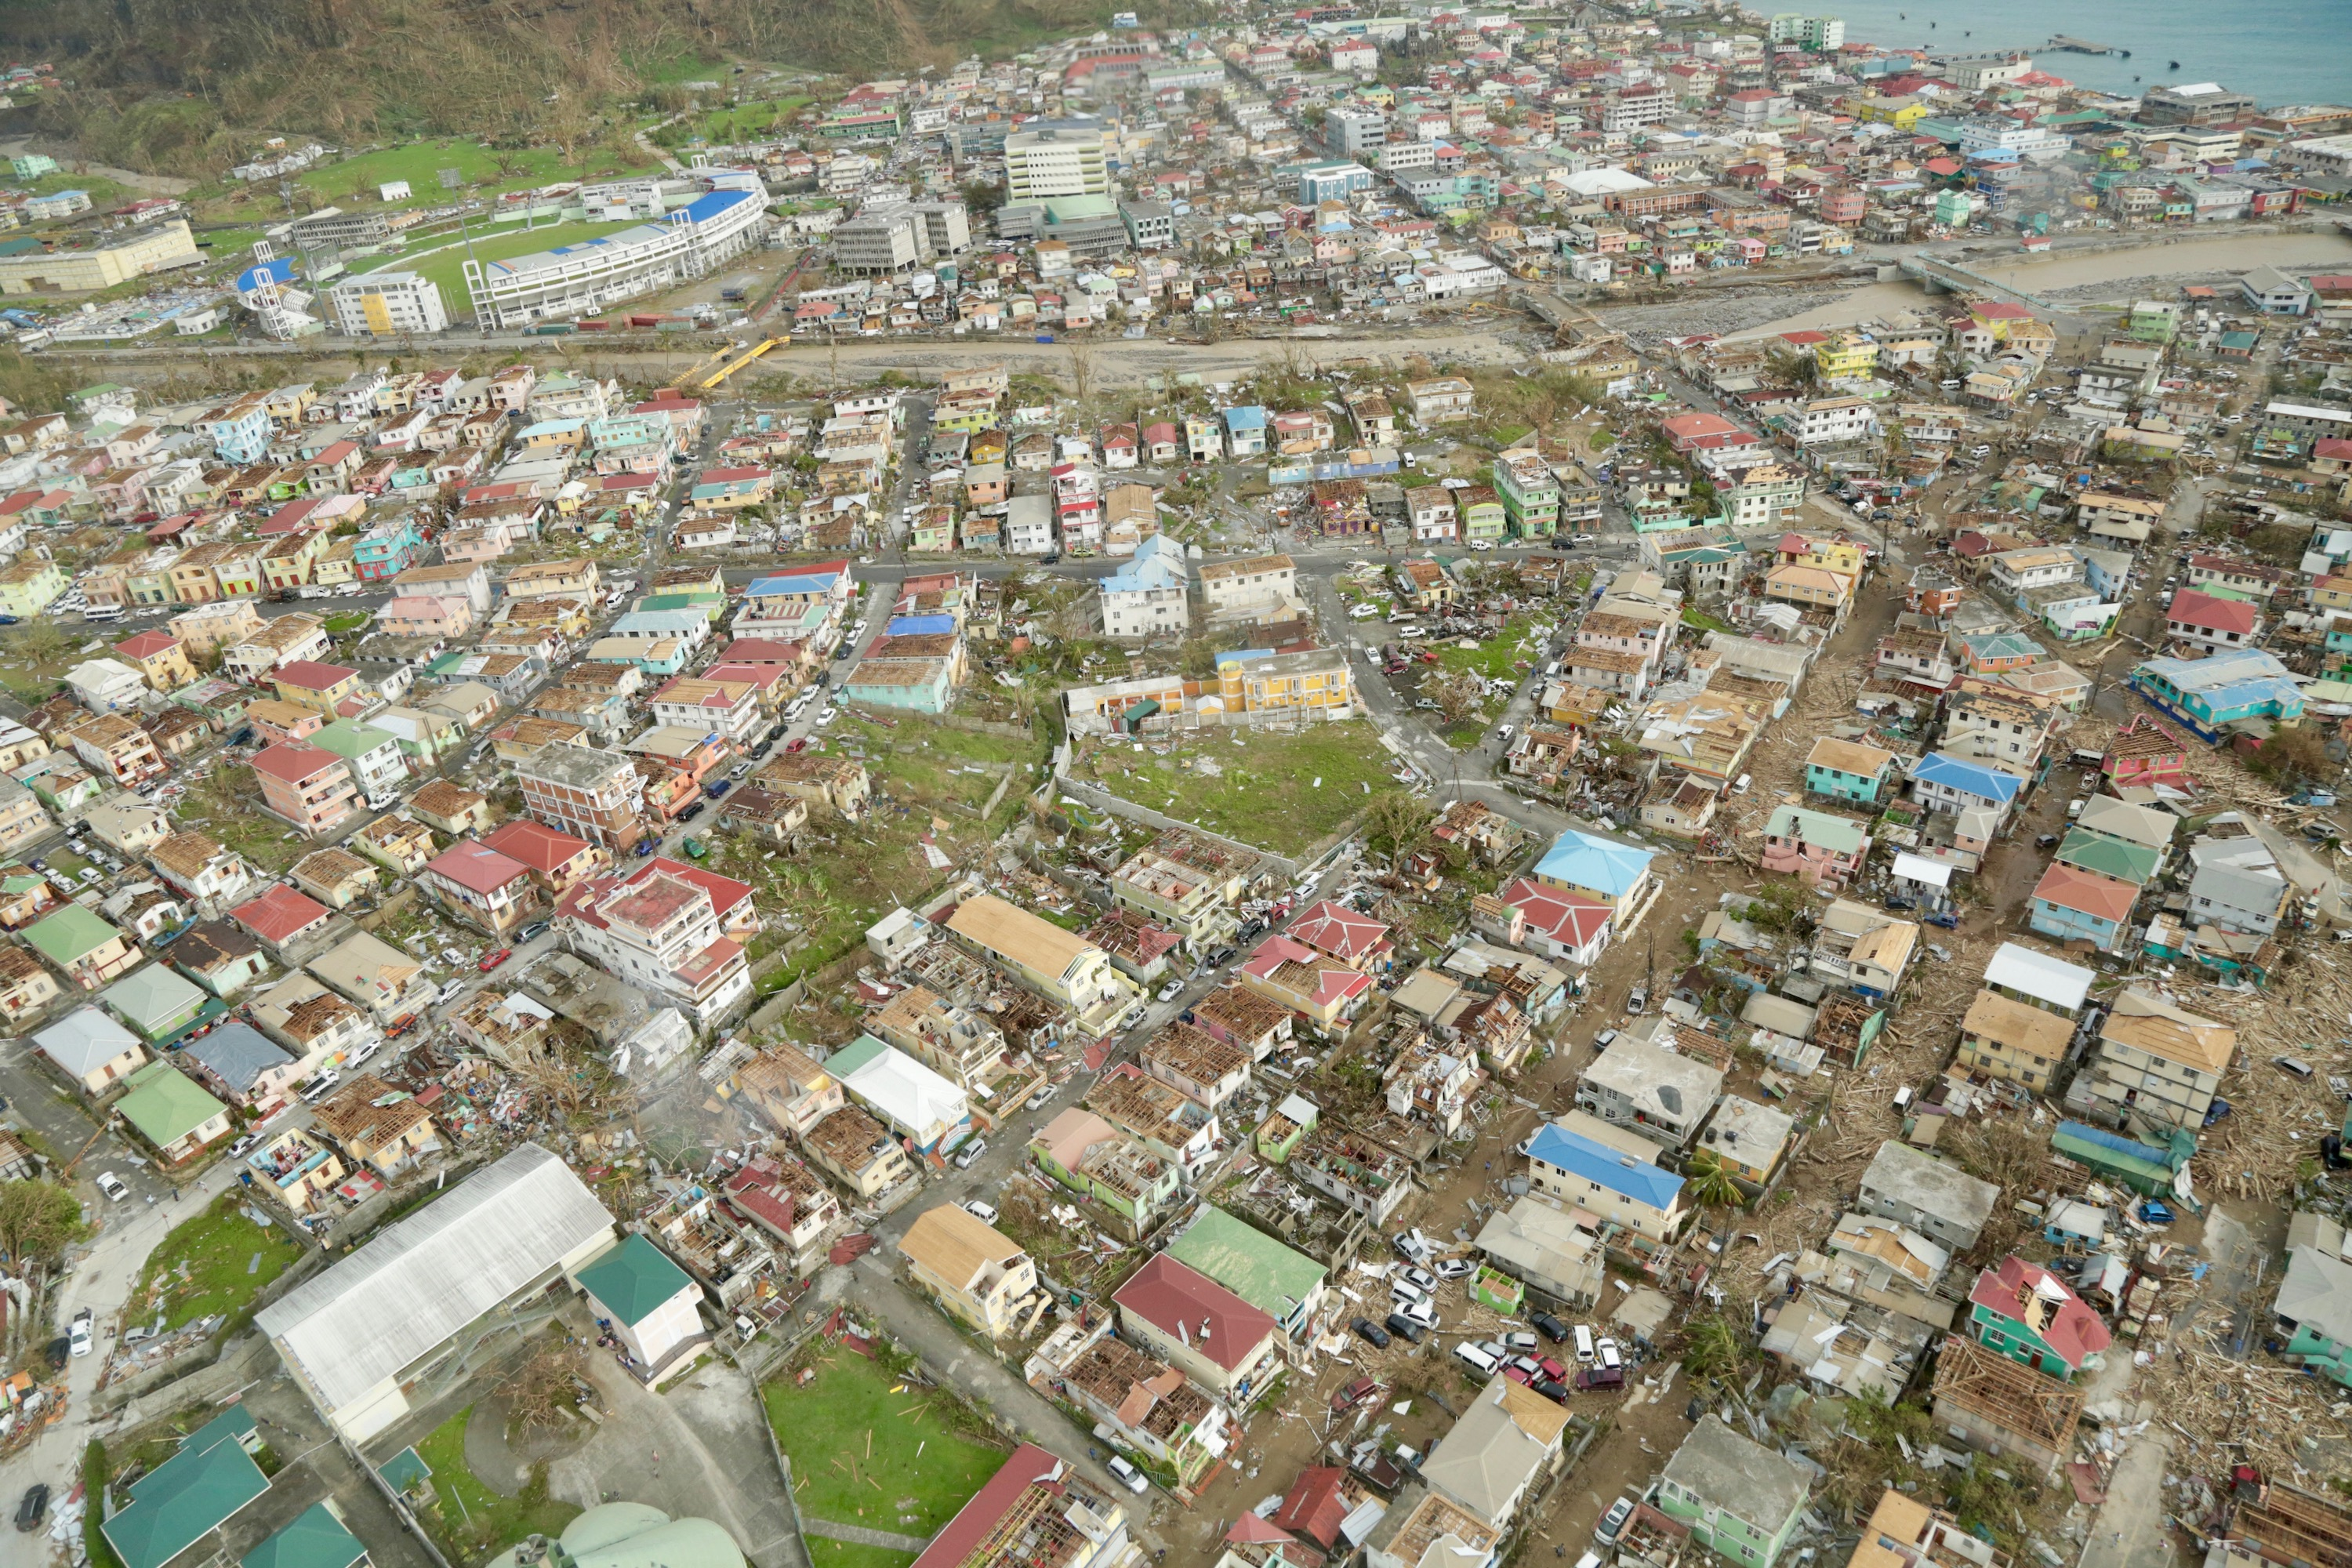 Mark Trahant: Indigenous community in Dominica takes major hit from hurricane